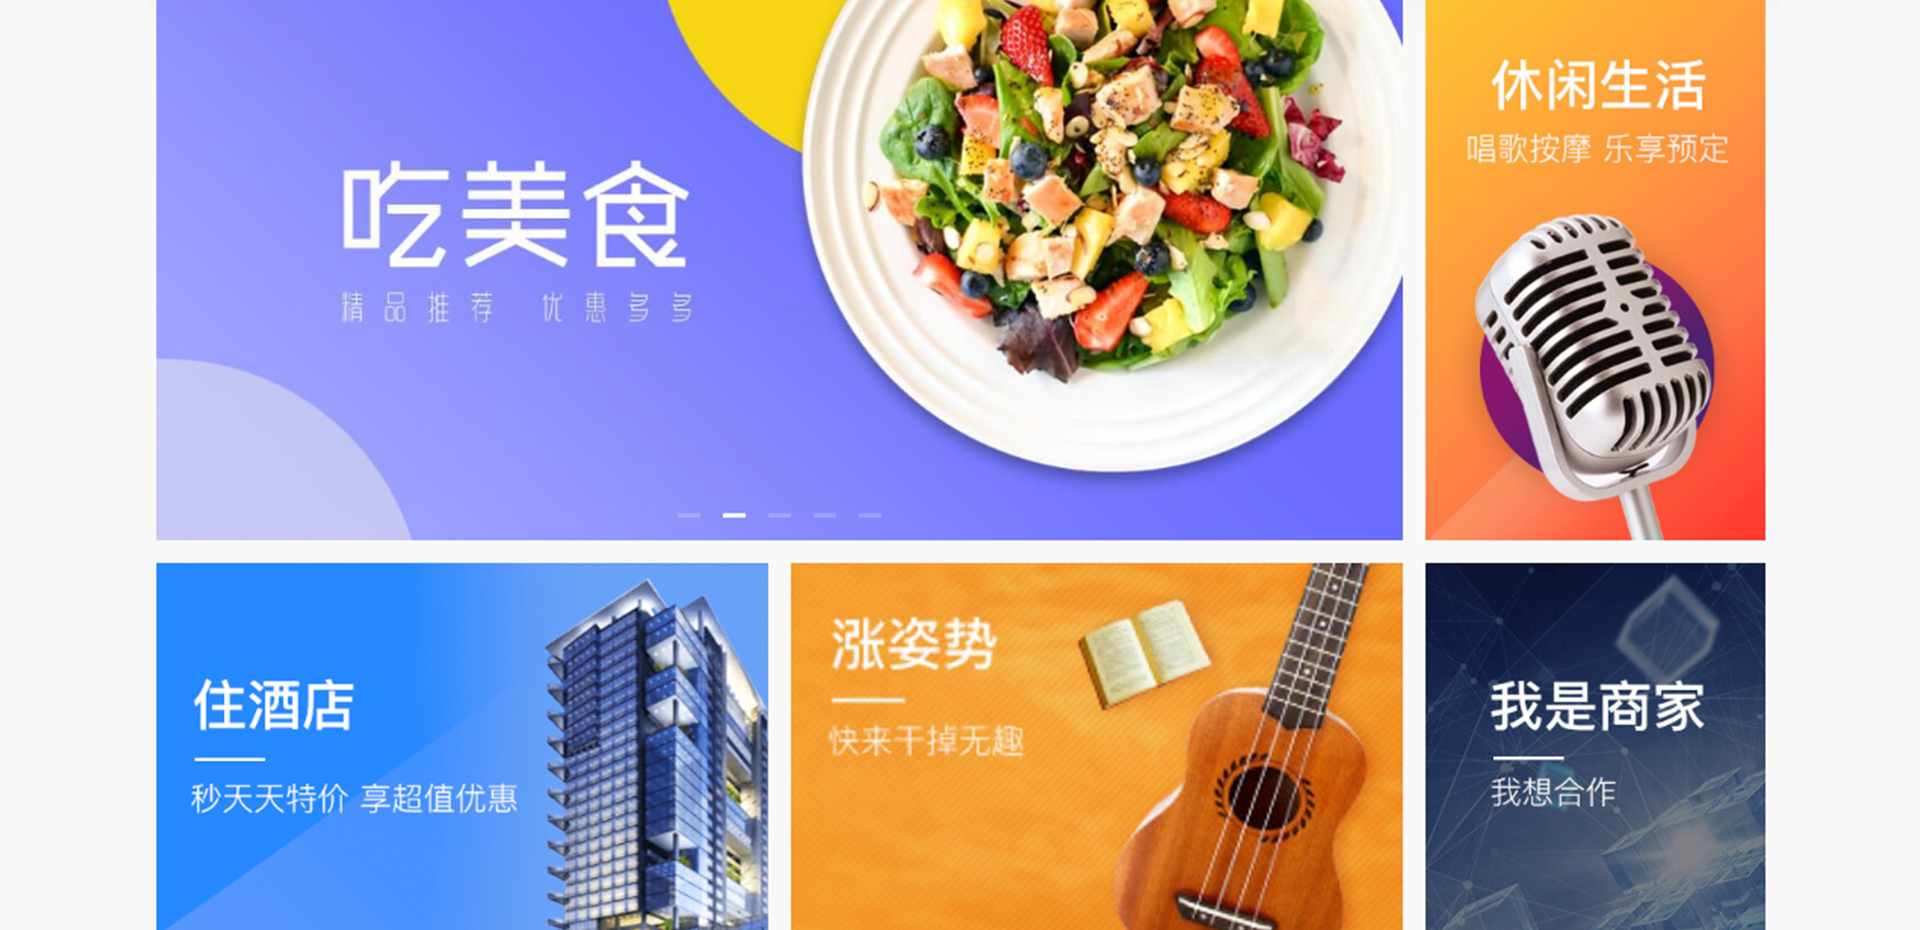 """Meituan, the """"Amazon for local services"""""""